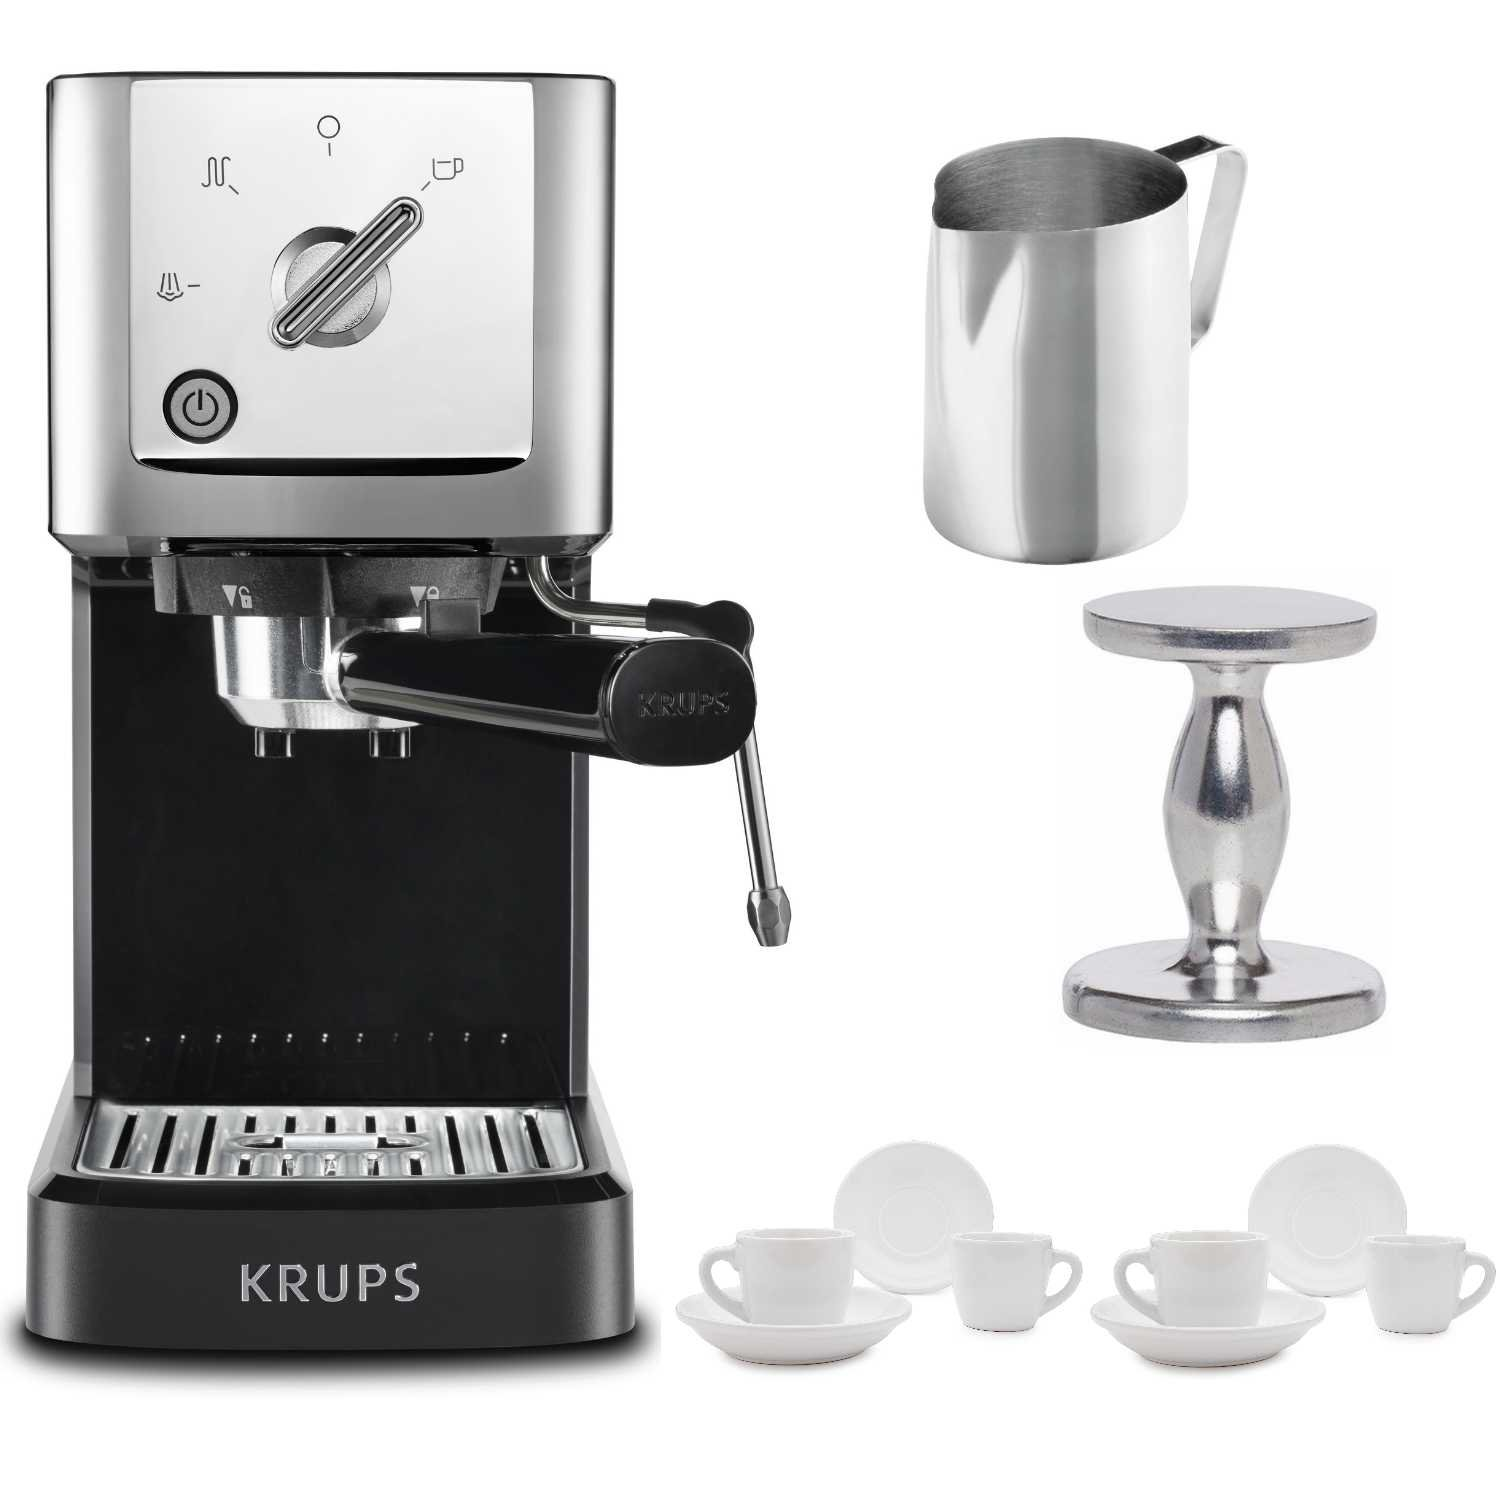 KRUPS XP344C51 Calvi Steam And Pump Compact Espresso Machine, Black Includes Stainless Steel Frothing Pitcher, Espresso Handheld Tamper and Two Ceramic Cups and Saucers